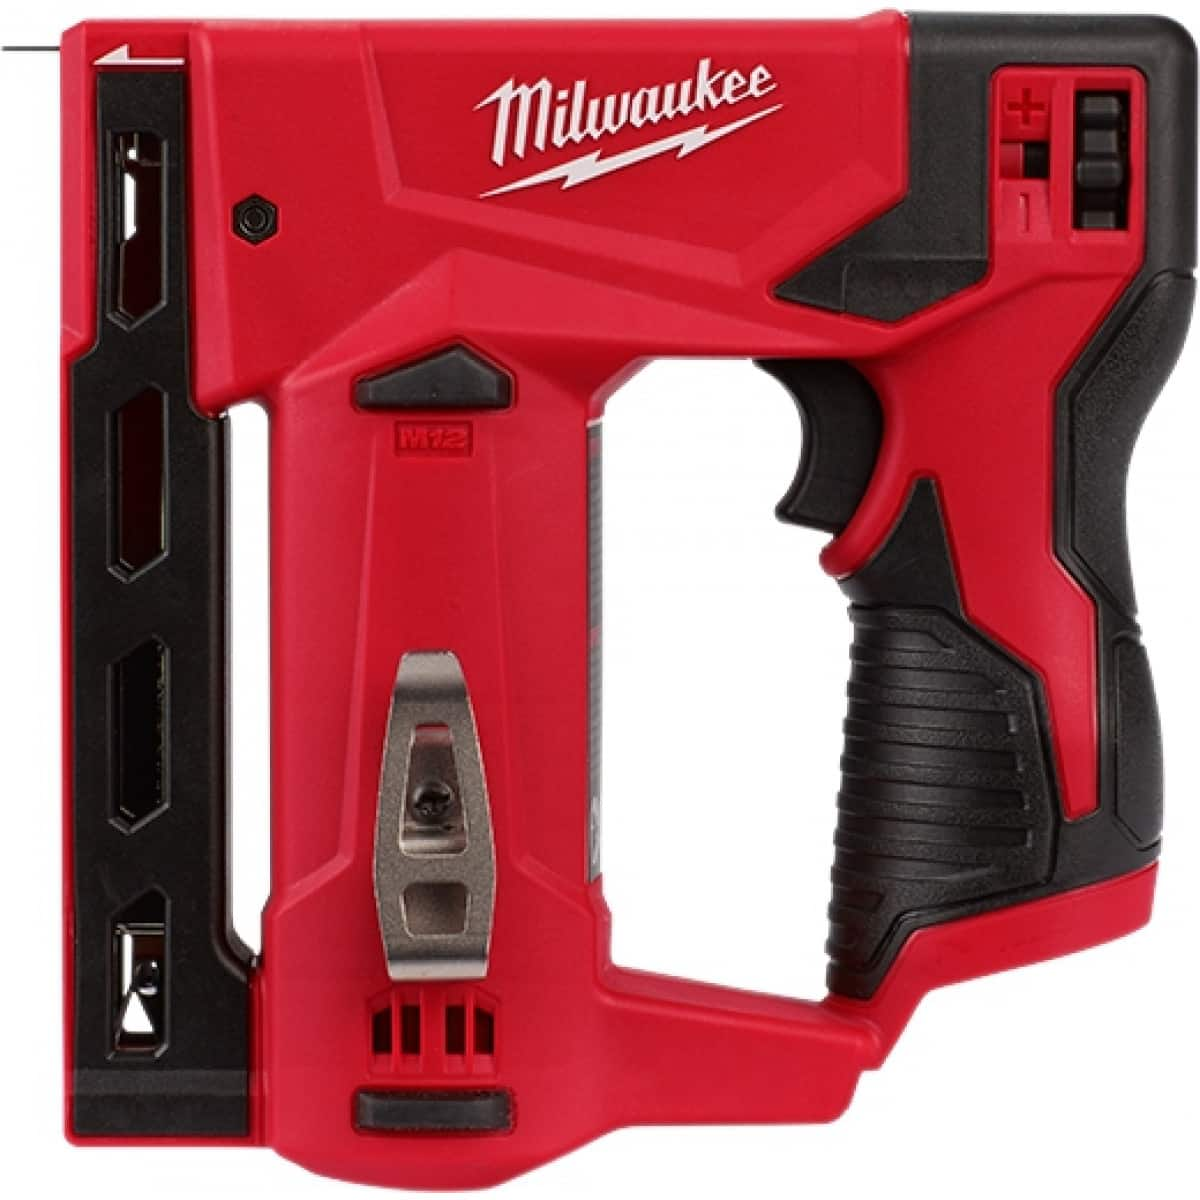 "Milwaukee M12 3/8"" Crown Stapler - $79"